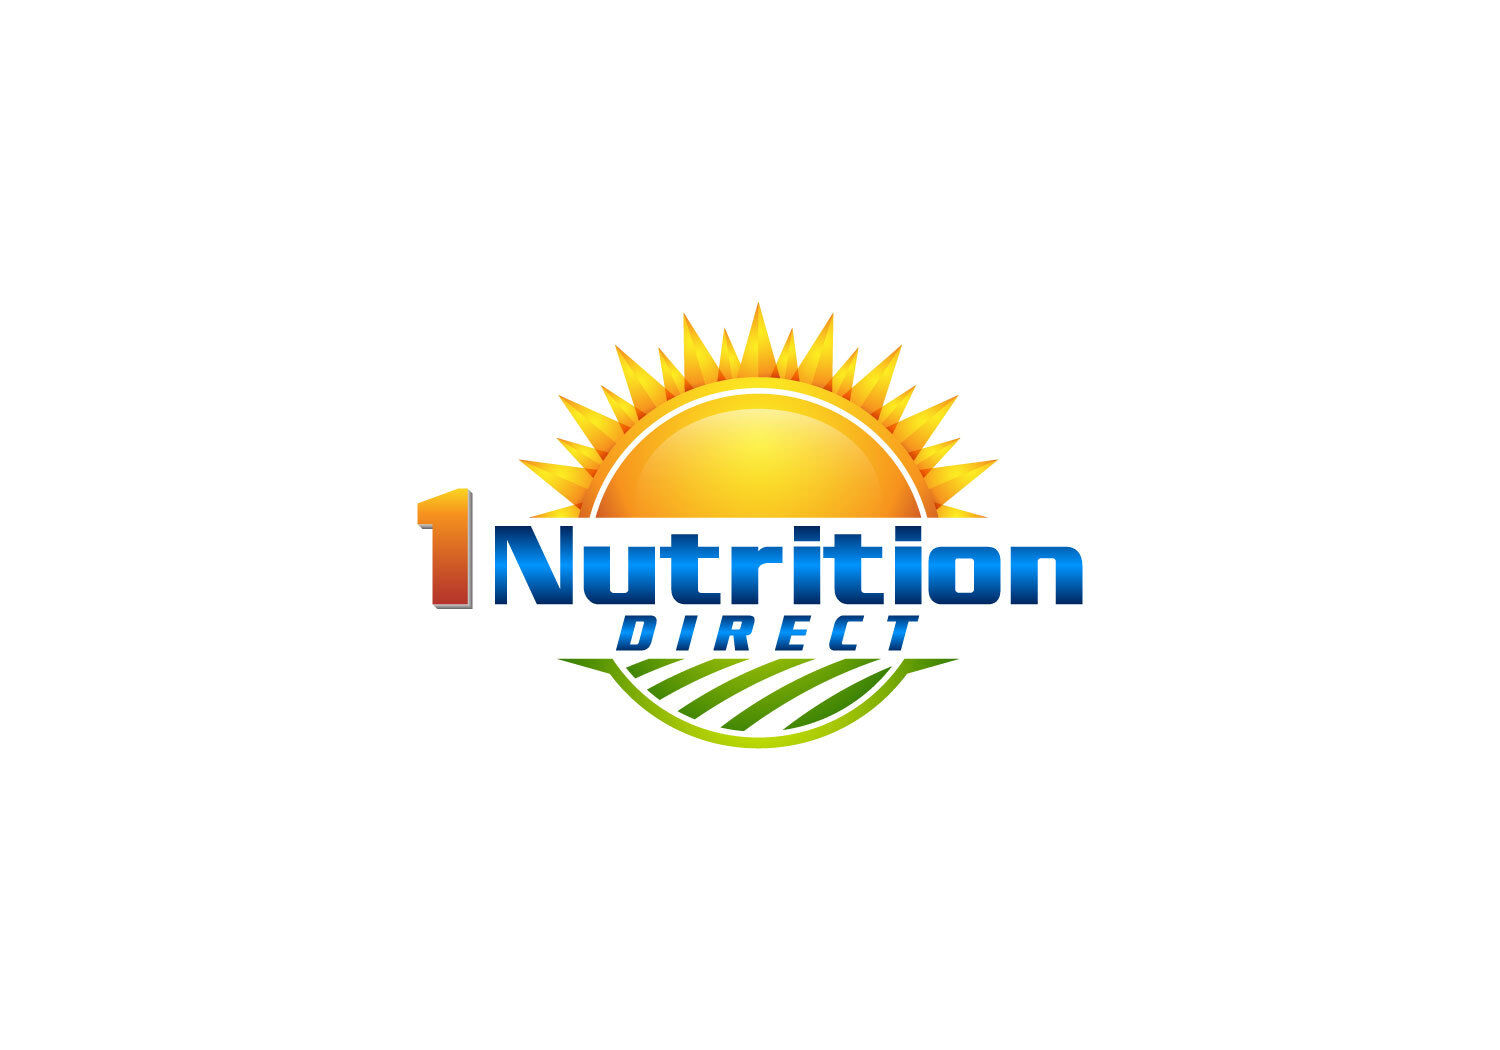 1 Nutrition Direct